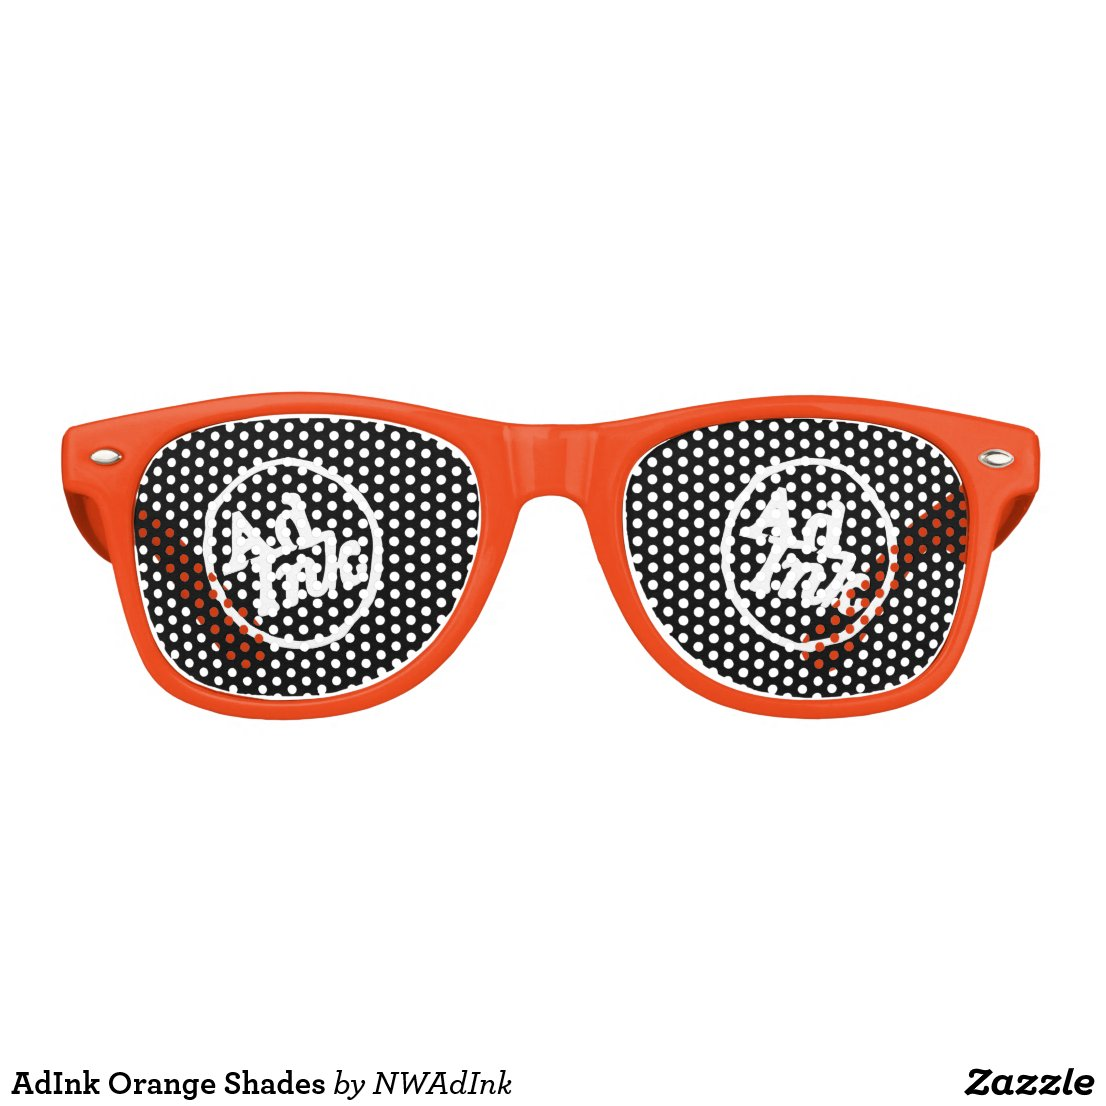 AdInk Orange Shades